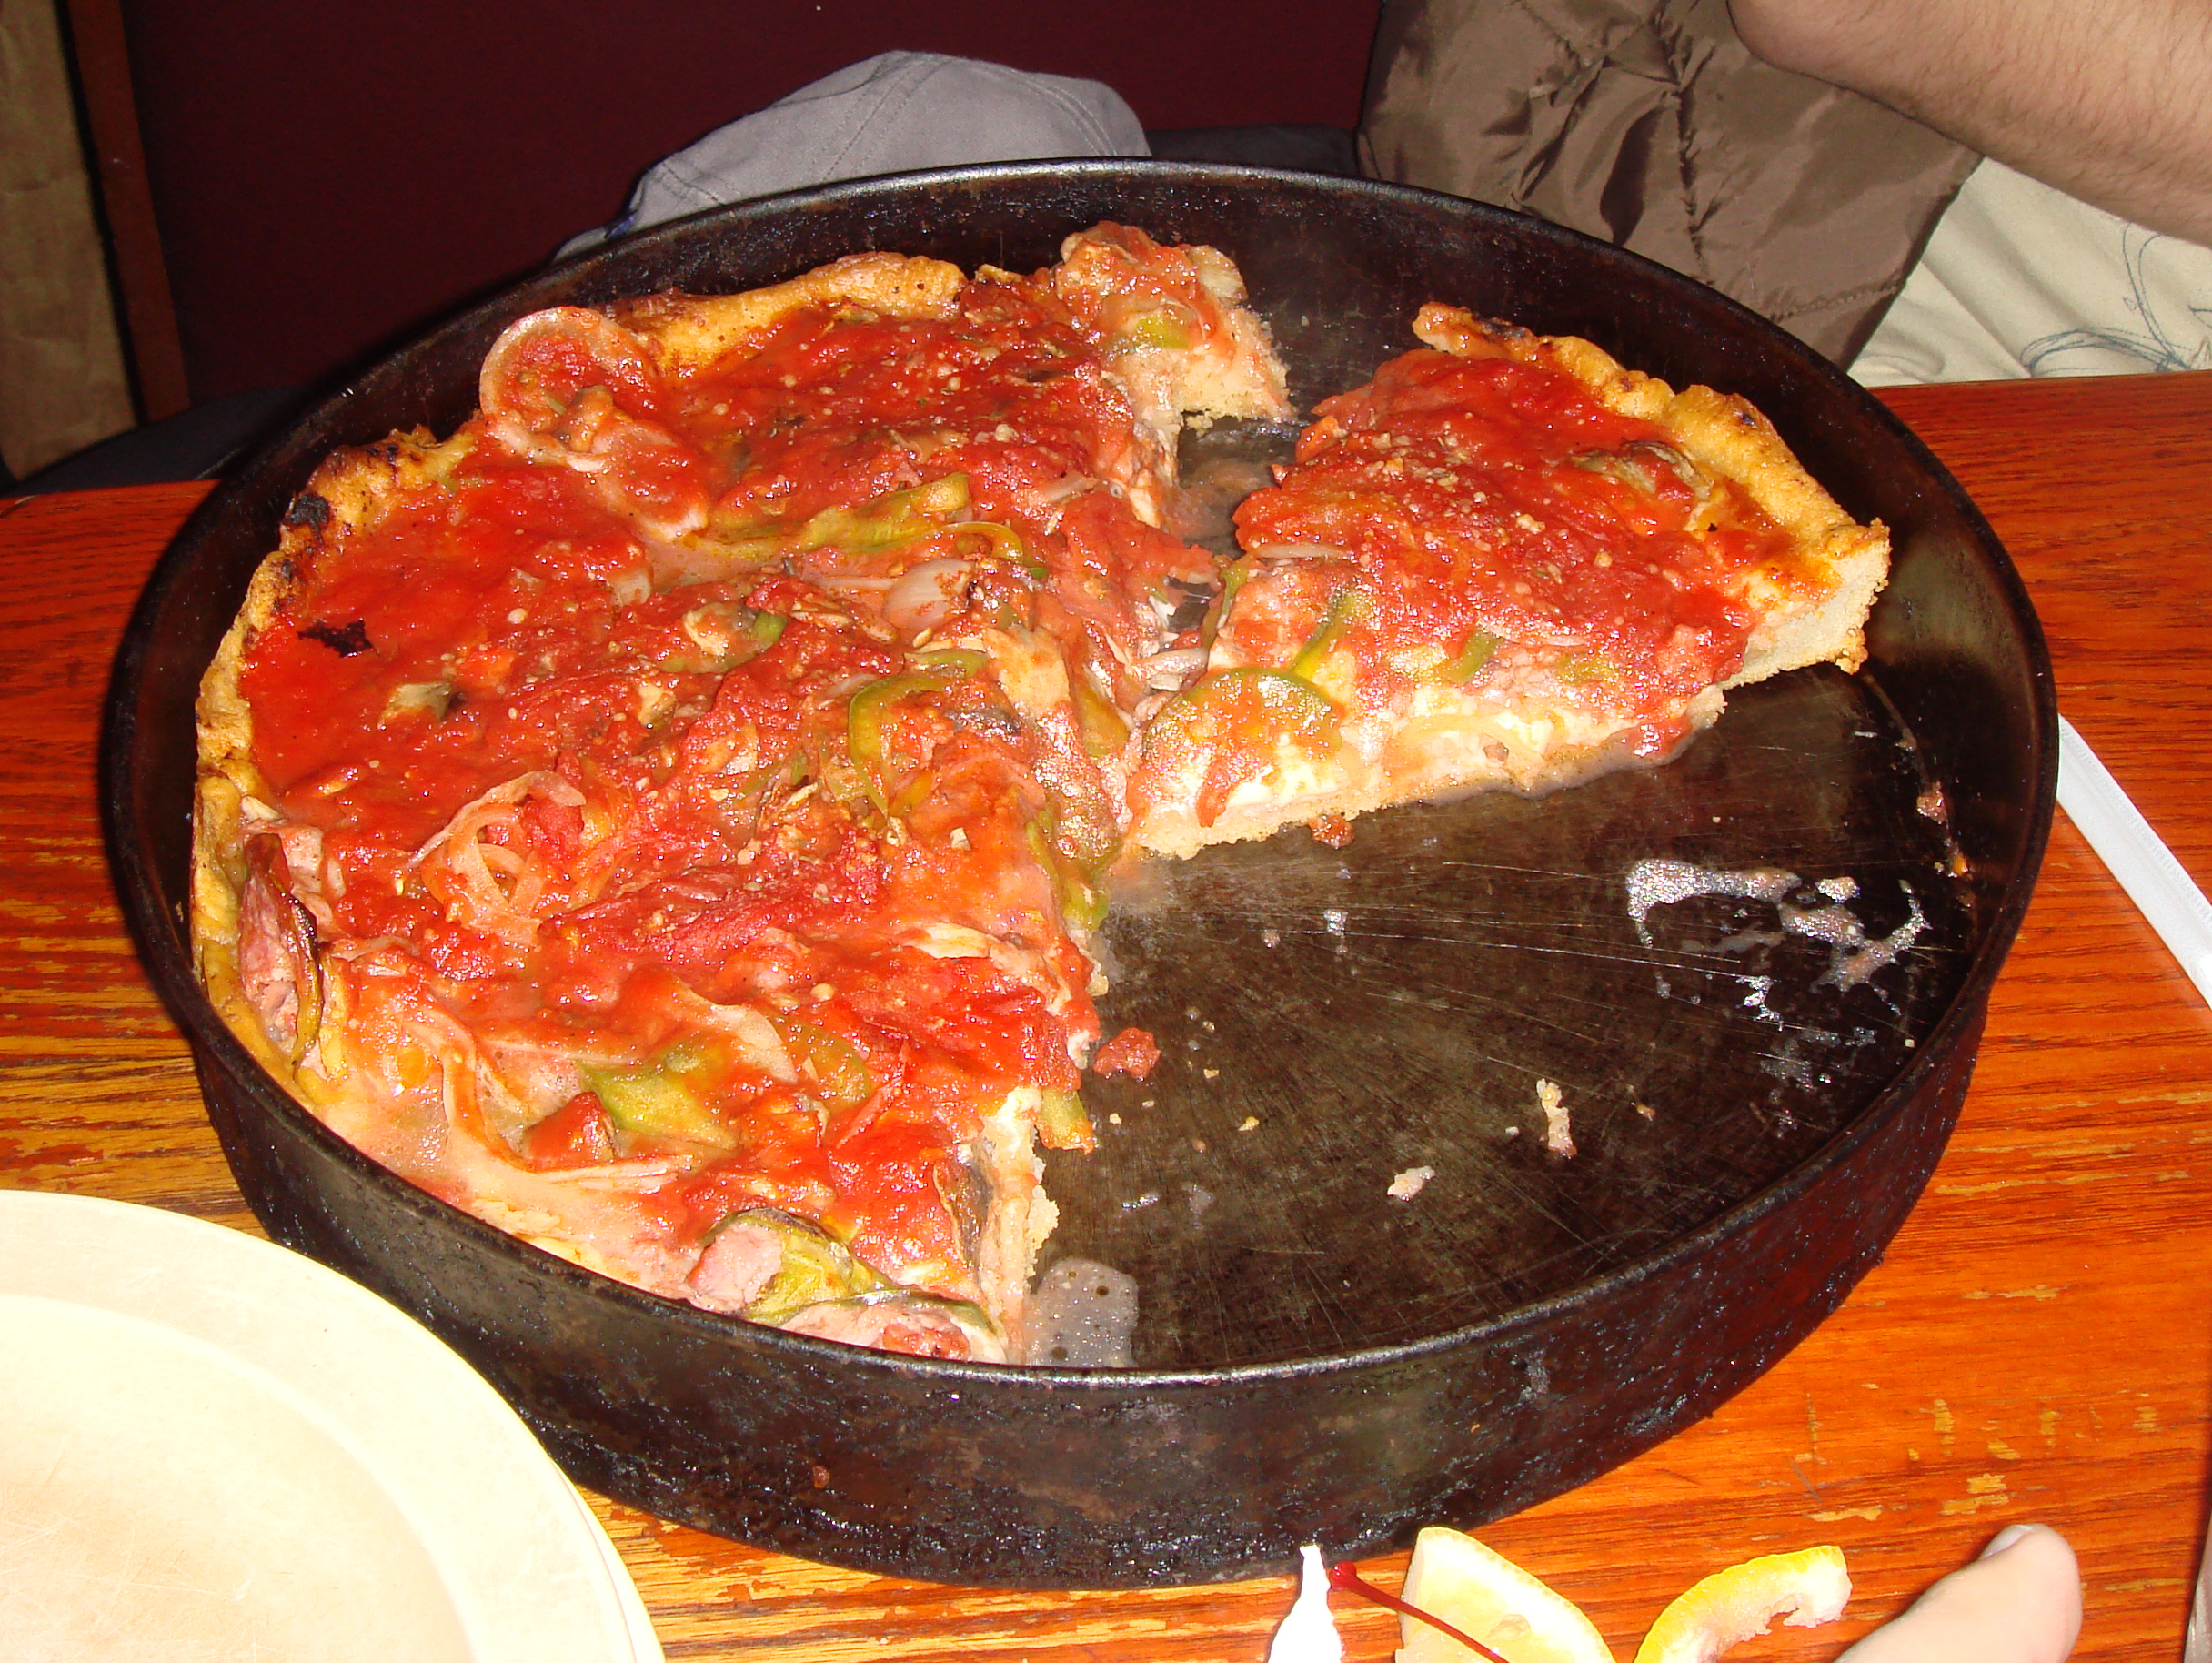 Chicago Pizza Labeled for Reuse